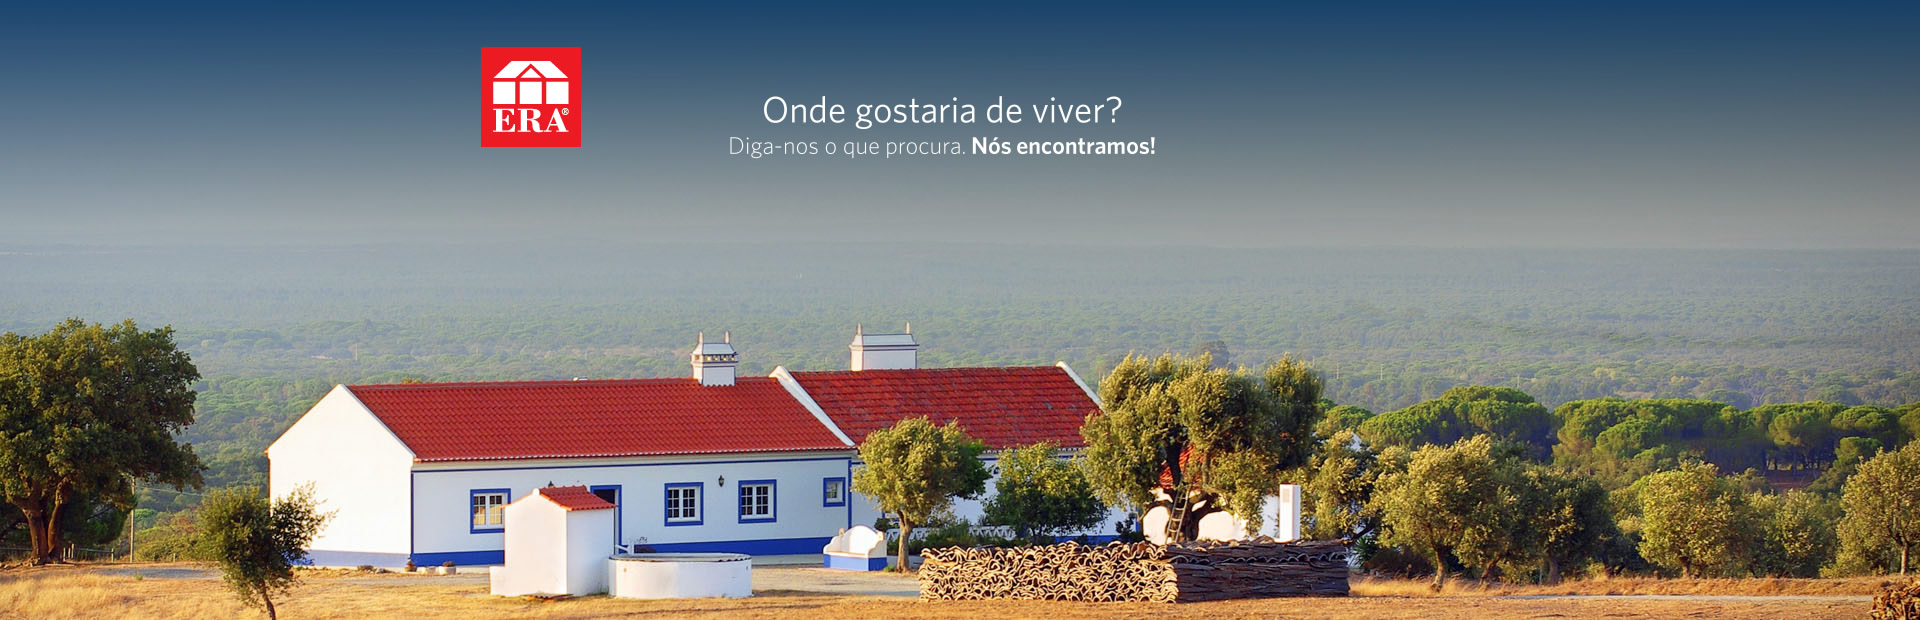 22_Nac_Alentejo_PT.jpg